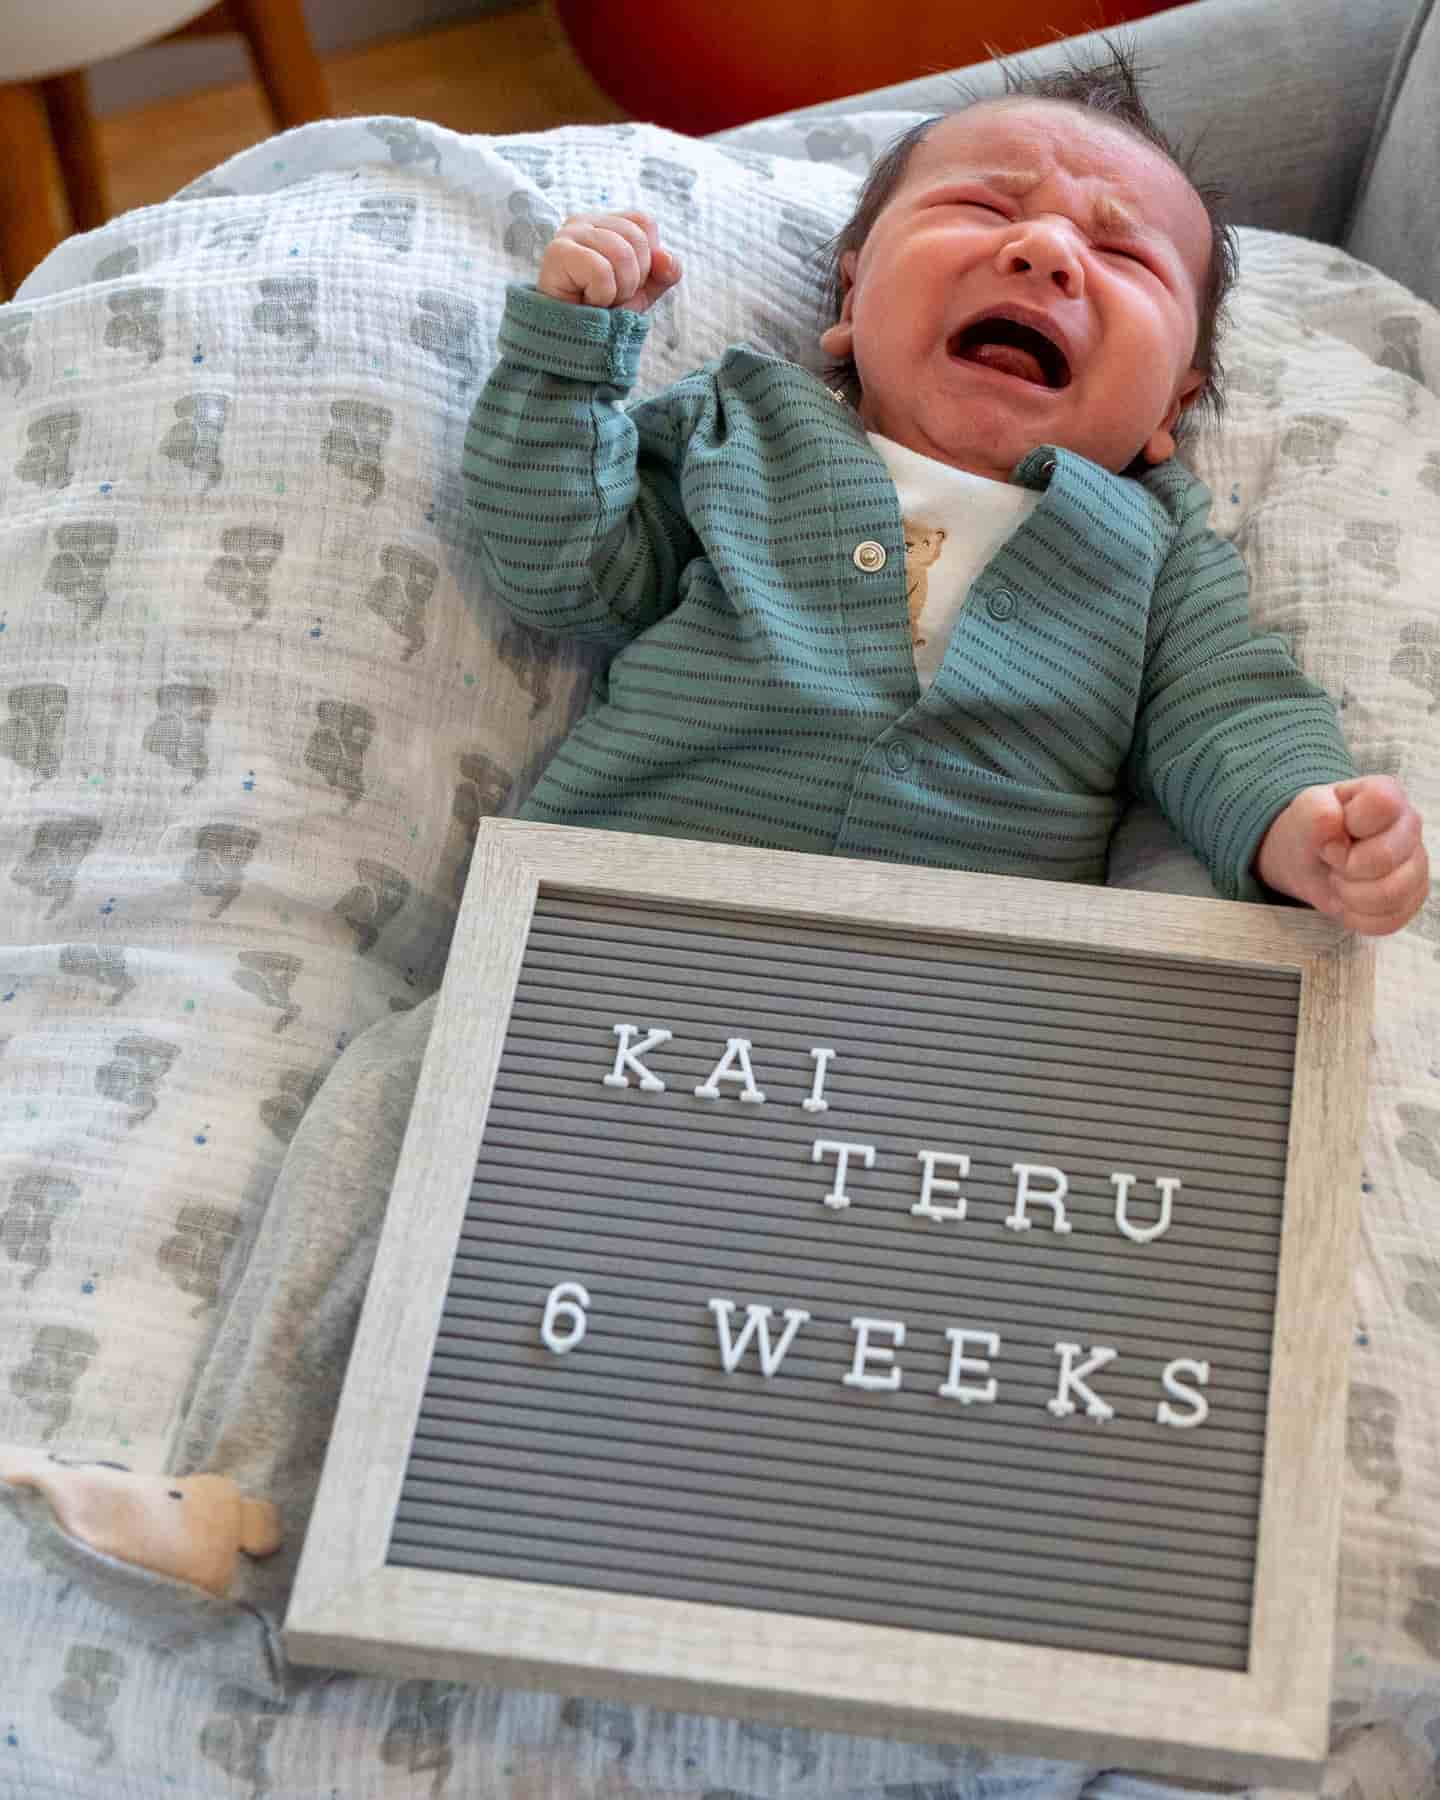 cute baby with framed felt letter board